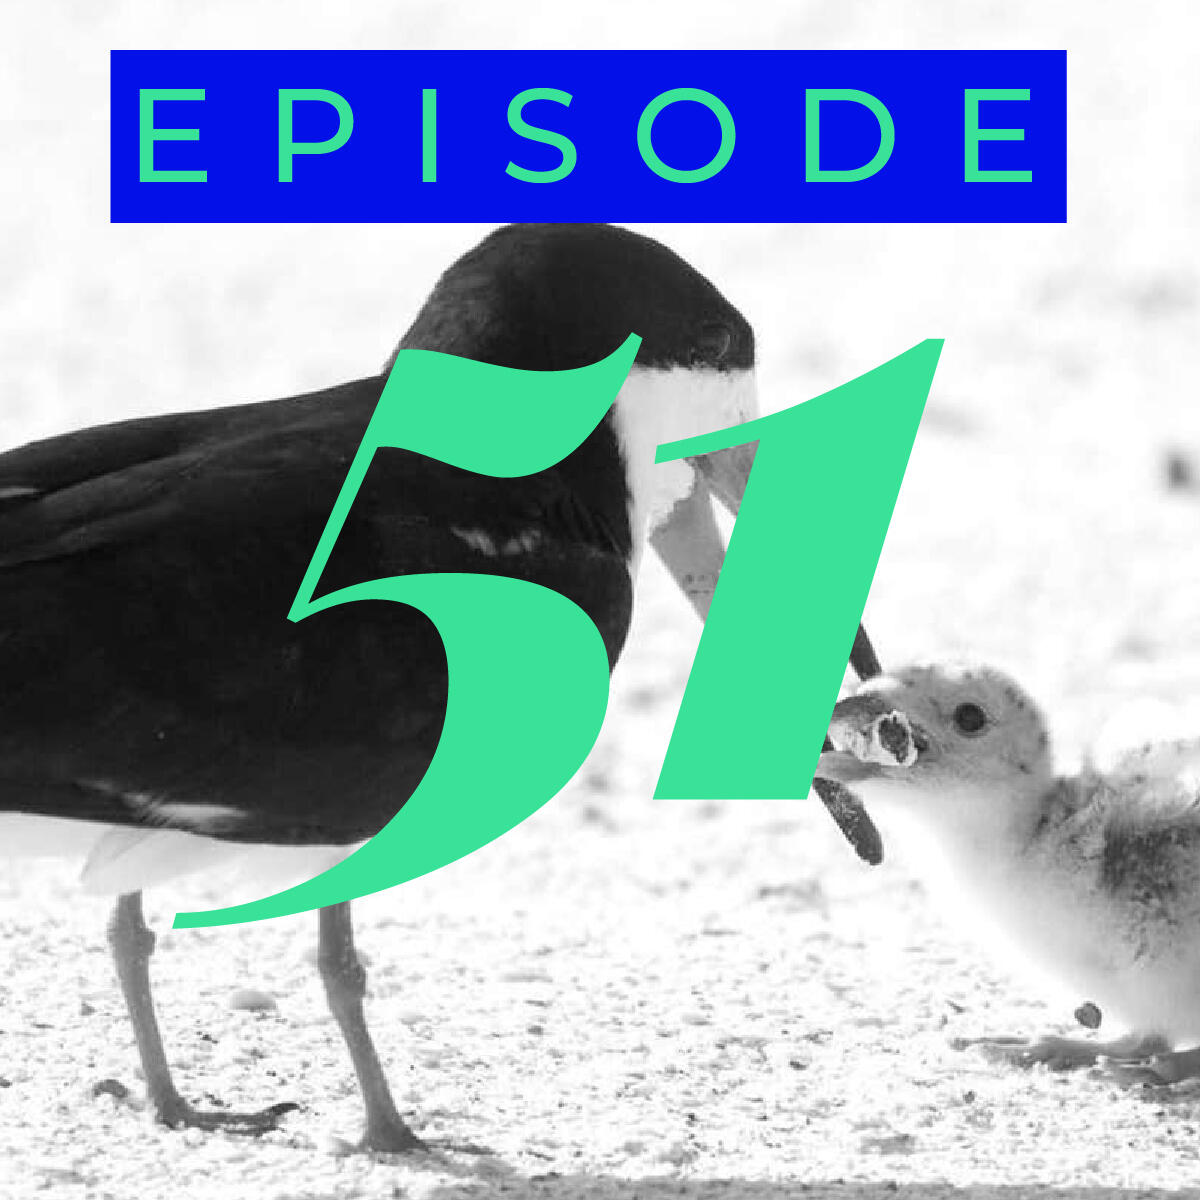 51: People growing horns, Birds eating cigarettes, Home-grown chat app